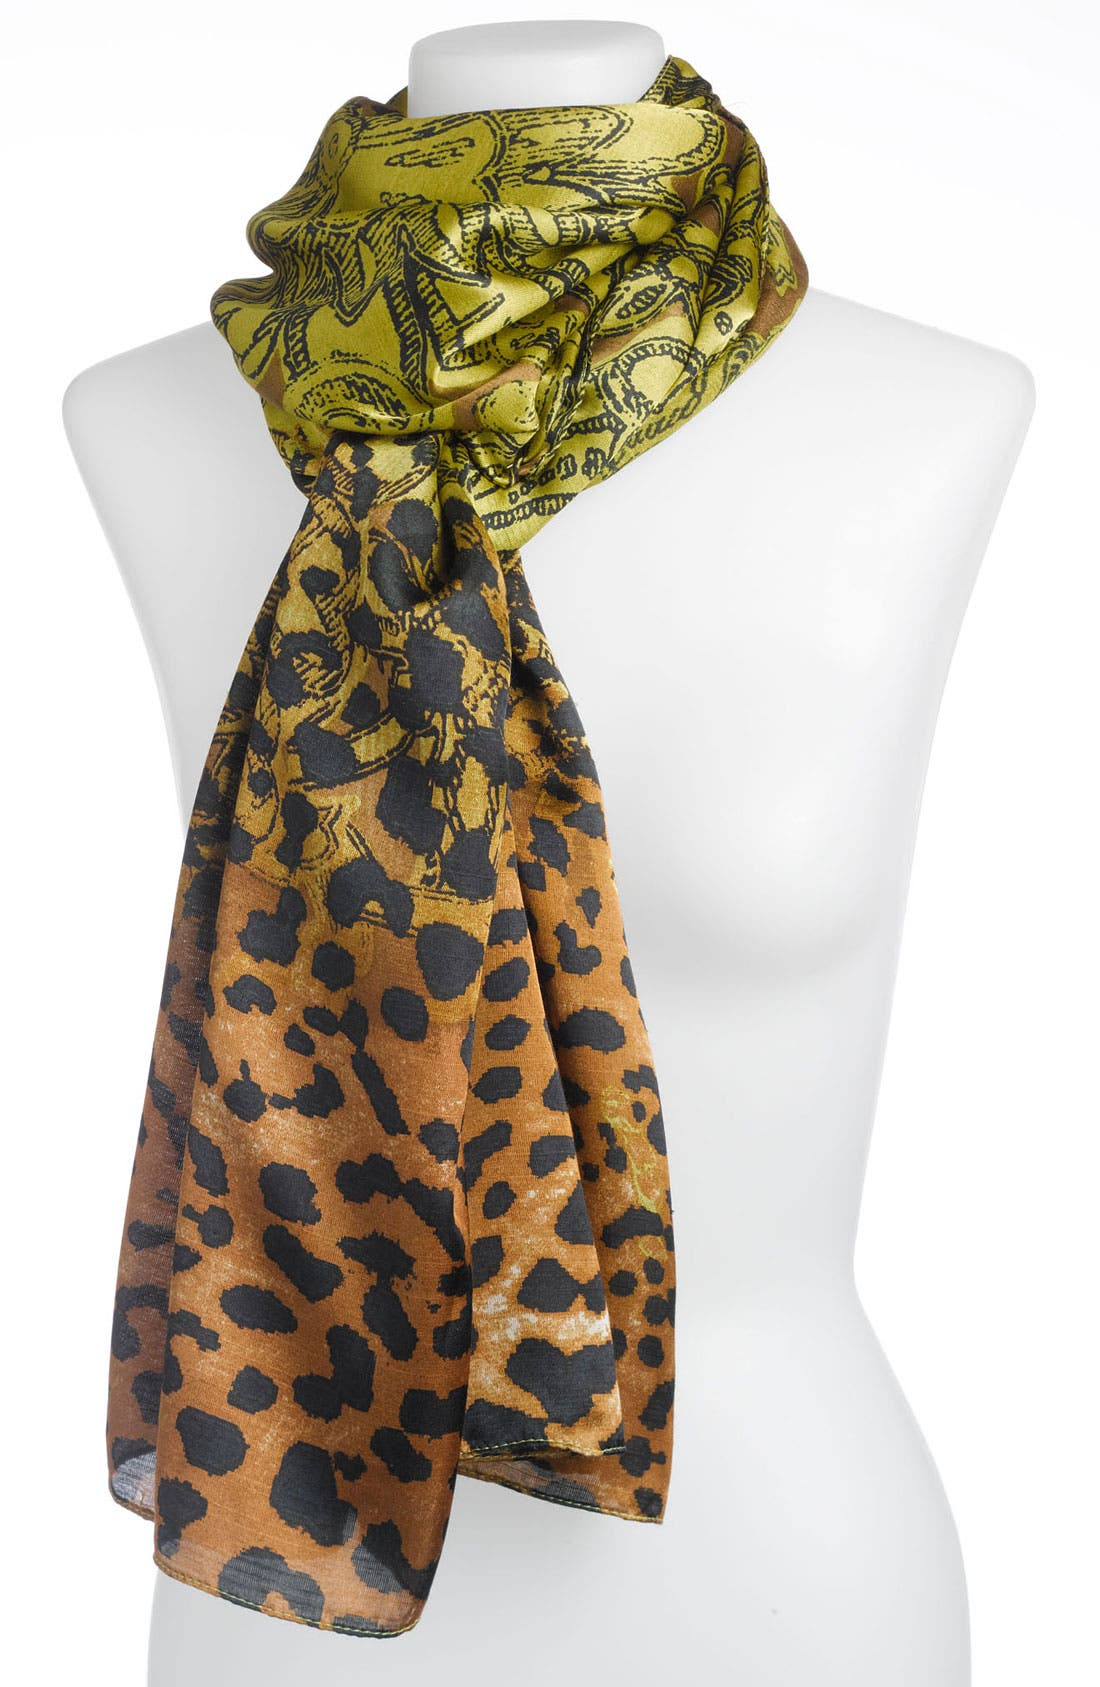 Alternate Image 1 Selected - Echo 'Floral Cheetah Spot' Scarf